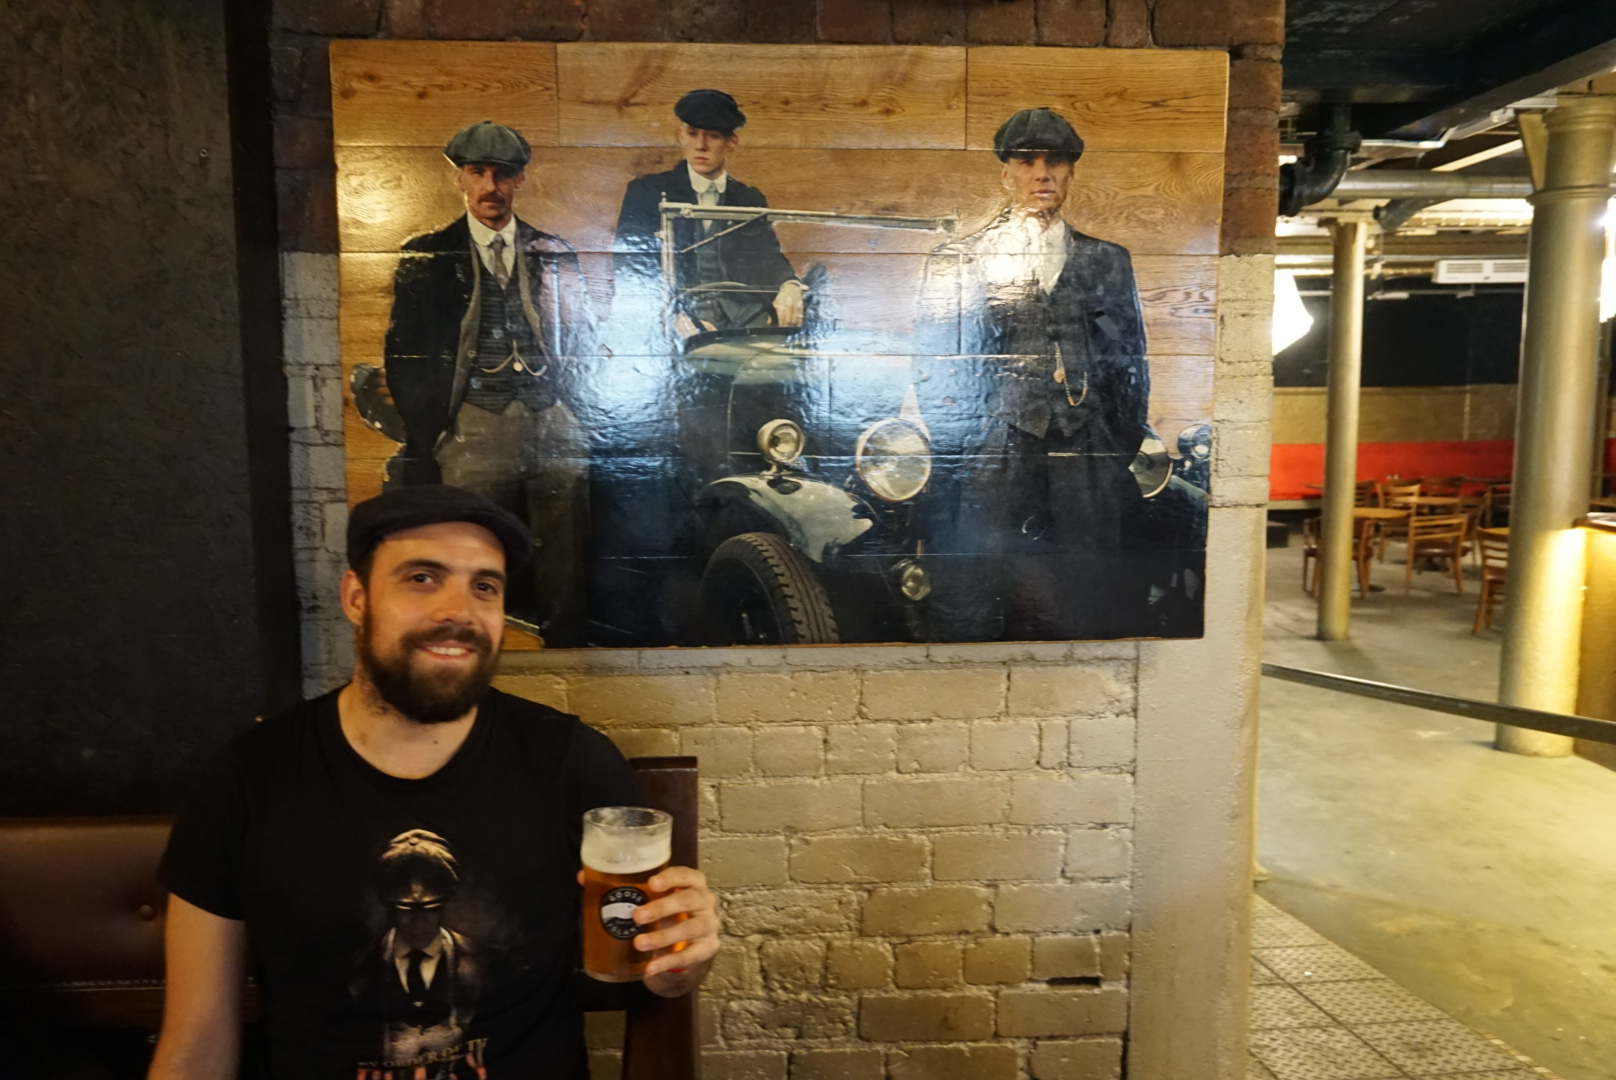 Bar de Peaky blinders en Liverpool